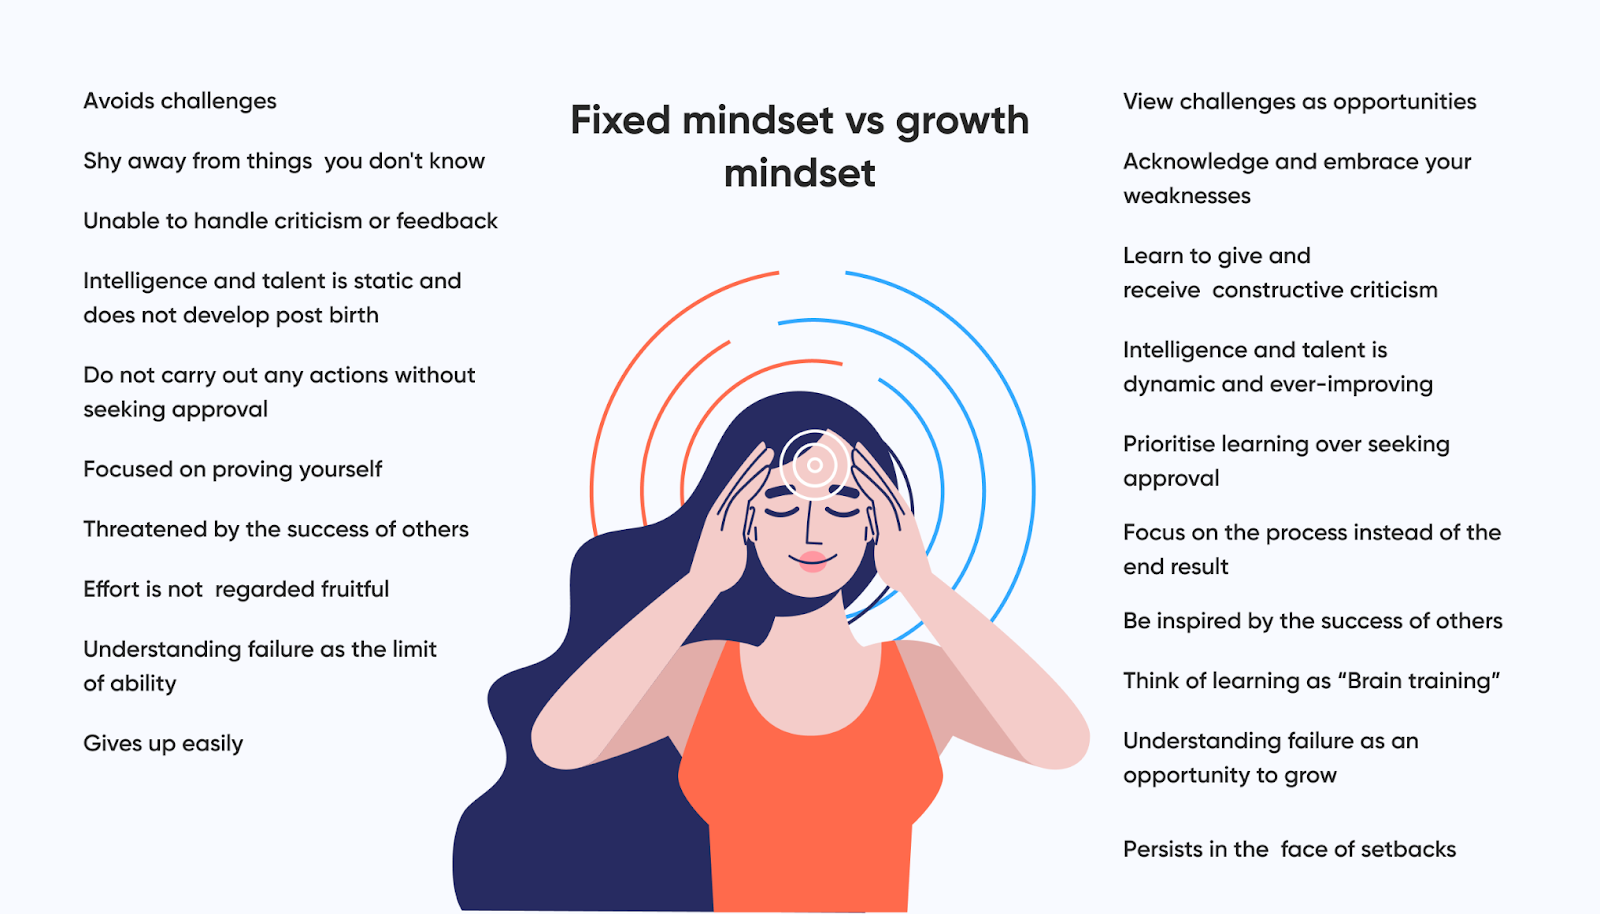 graphic-fixed-mindset-vs-growth-mindset-full-potential